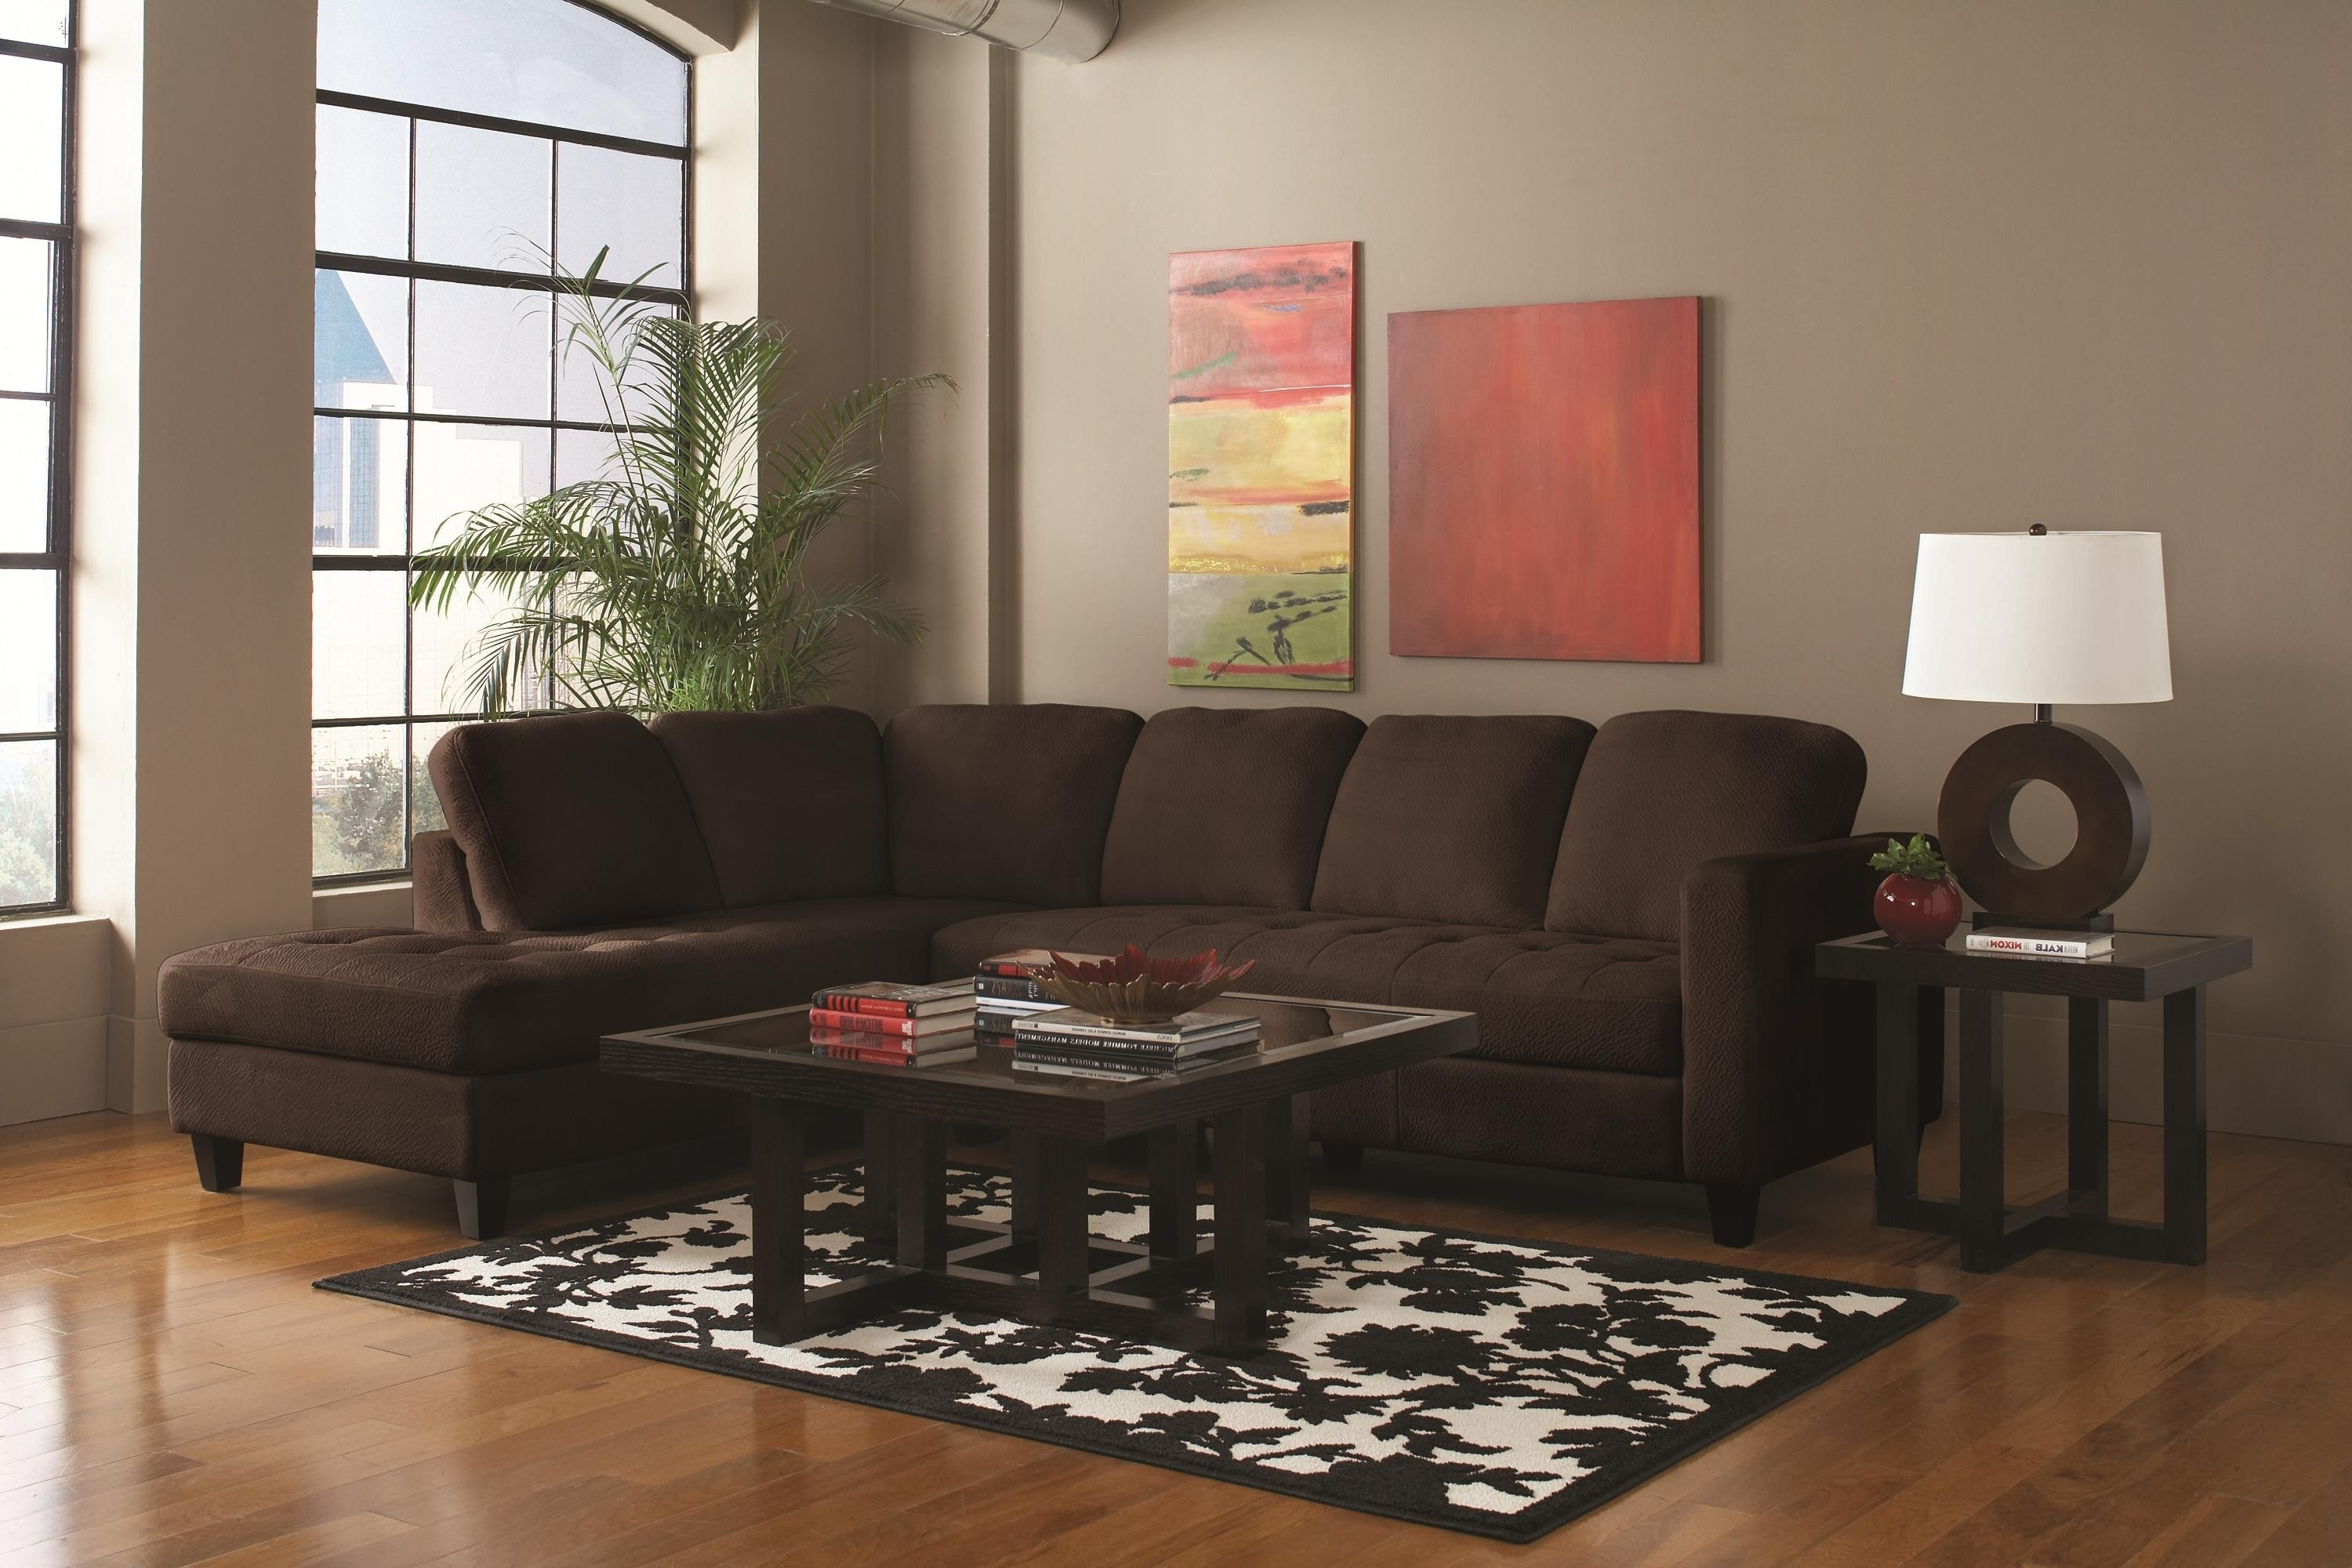 Latest Coffee Tables For Sectional Sofa With Chaise Within Best Coffee Table For Sectional Couch – Laphotos (View 6 of 15)